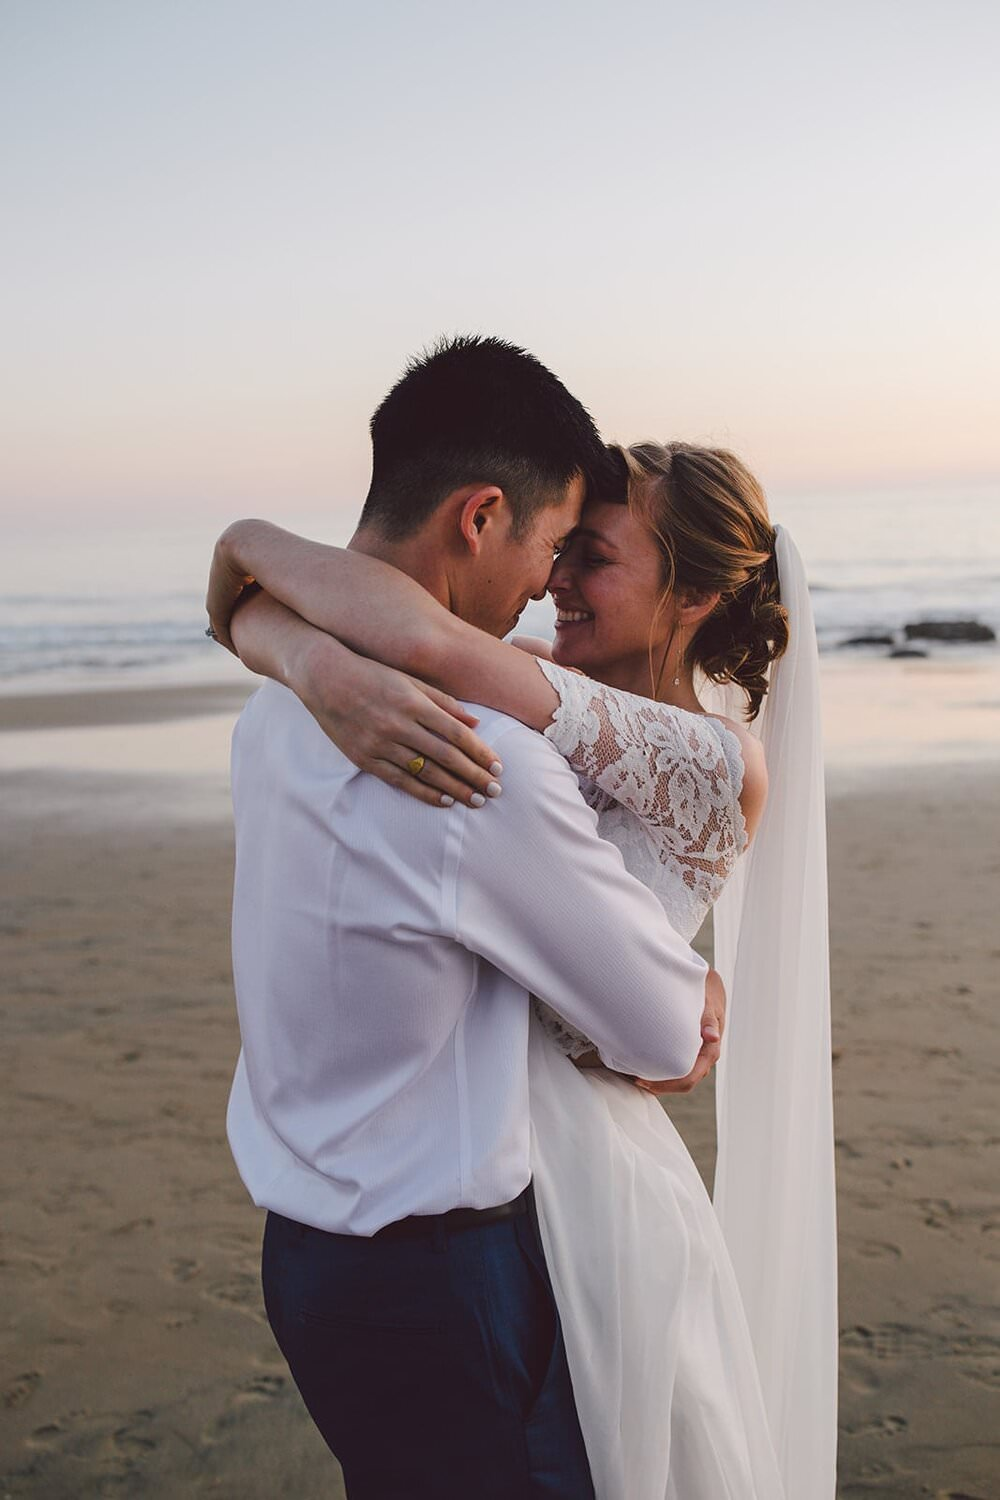 Los angeles wedding, where to elope in california, laguna beach elopement, laguna beach courthouse wedding, orange county wedding photographer, beach elopement locations, grace loves lace wedding dress, two piece wedding dress, california elopement packages, crystal cove state park, crystal cove wedding, california elopement ideas, elopement inspiration, adventure elopement ideas, sunset elopement, sunset wedding, adventure elopement location, national park elopement, beach elopement dress